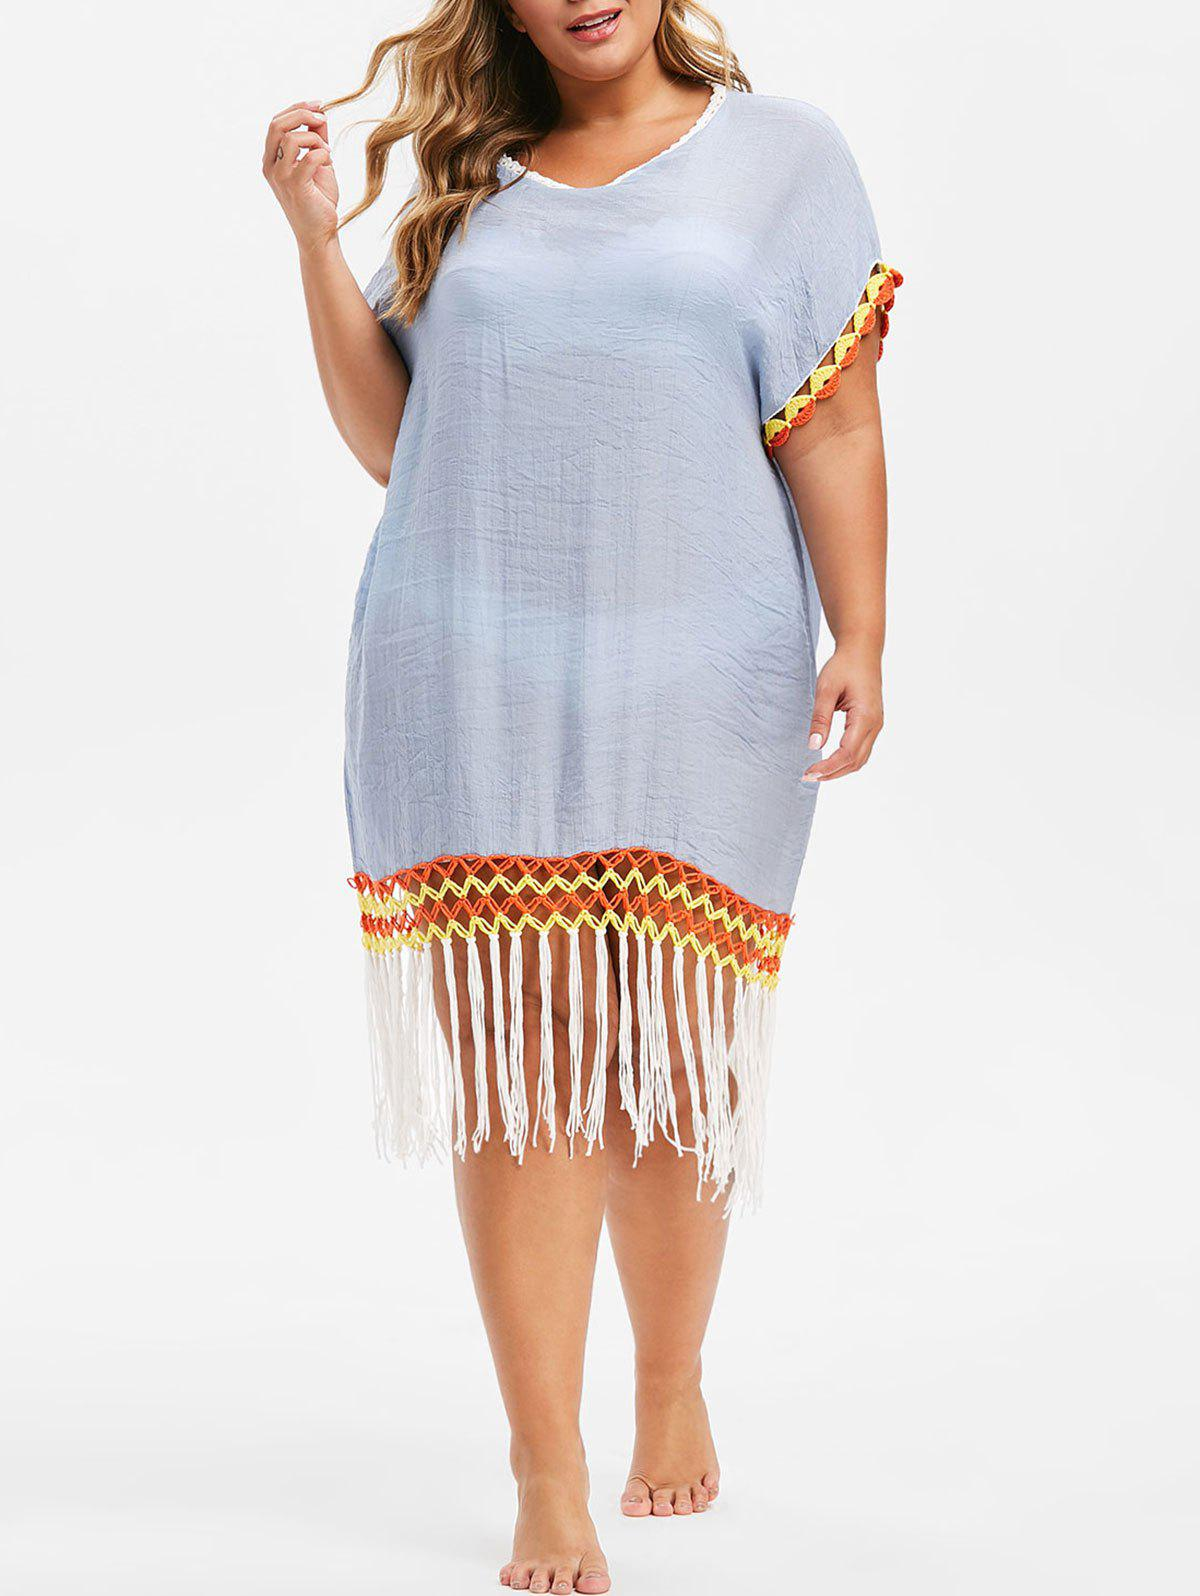 bea06501c 46% OFF] Plus Size Fringe Beach Cover Up Dress | Rosegal